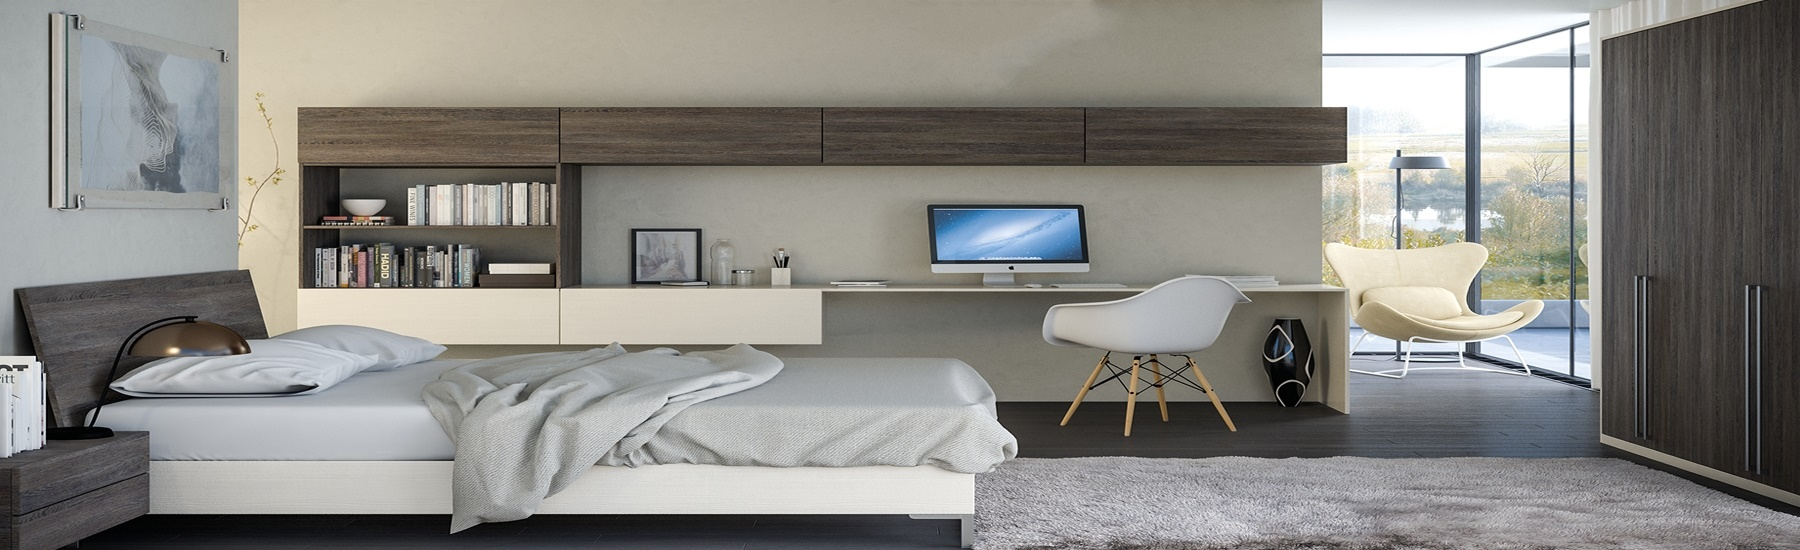 valore-fitted-bedroom